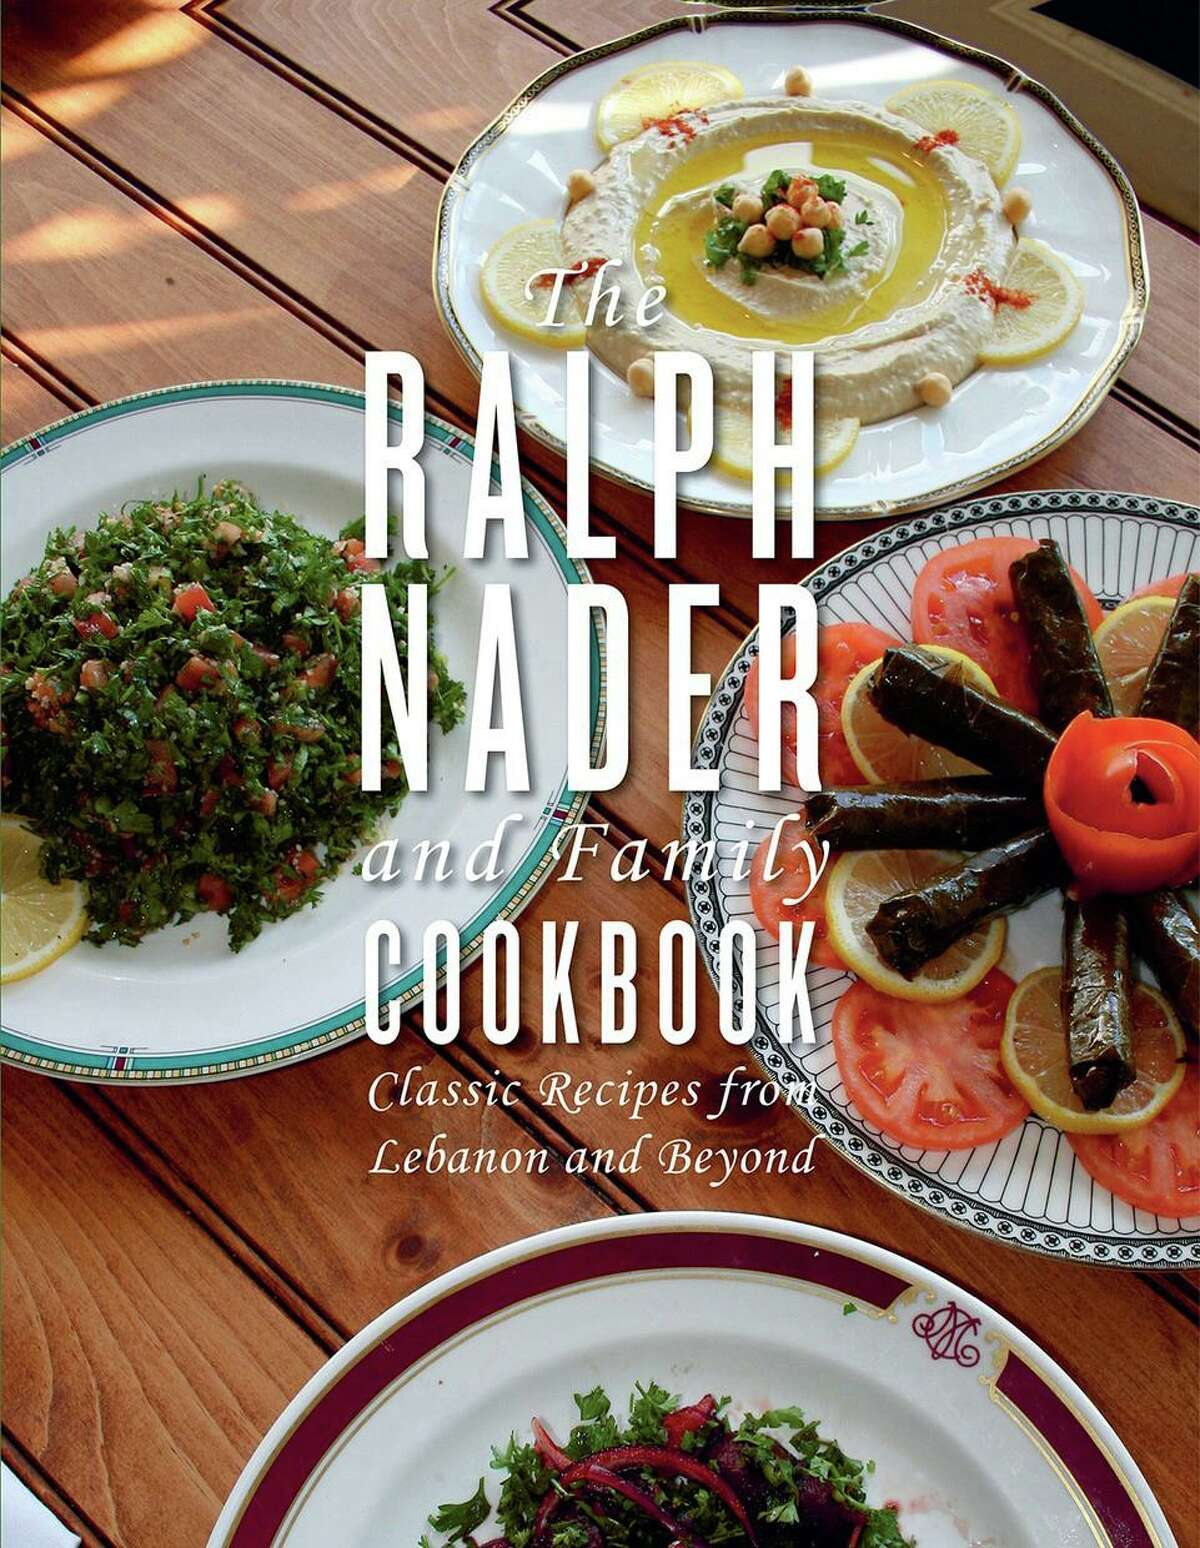 """""""The Ralph Nader and Family Cookbook"""" features classic recipes from Lebanon and beyond. It's filled with healthy recipes inspired by Nader's upbringing in Connecticut. The political activist and consumer advocate is also known for other books, plus his podcast and radio broadcast, """"The Ralph Nader Radio Hour."""""""